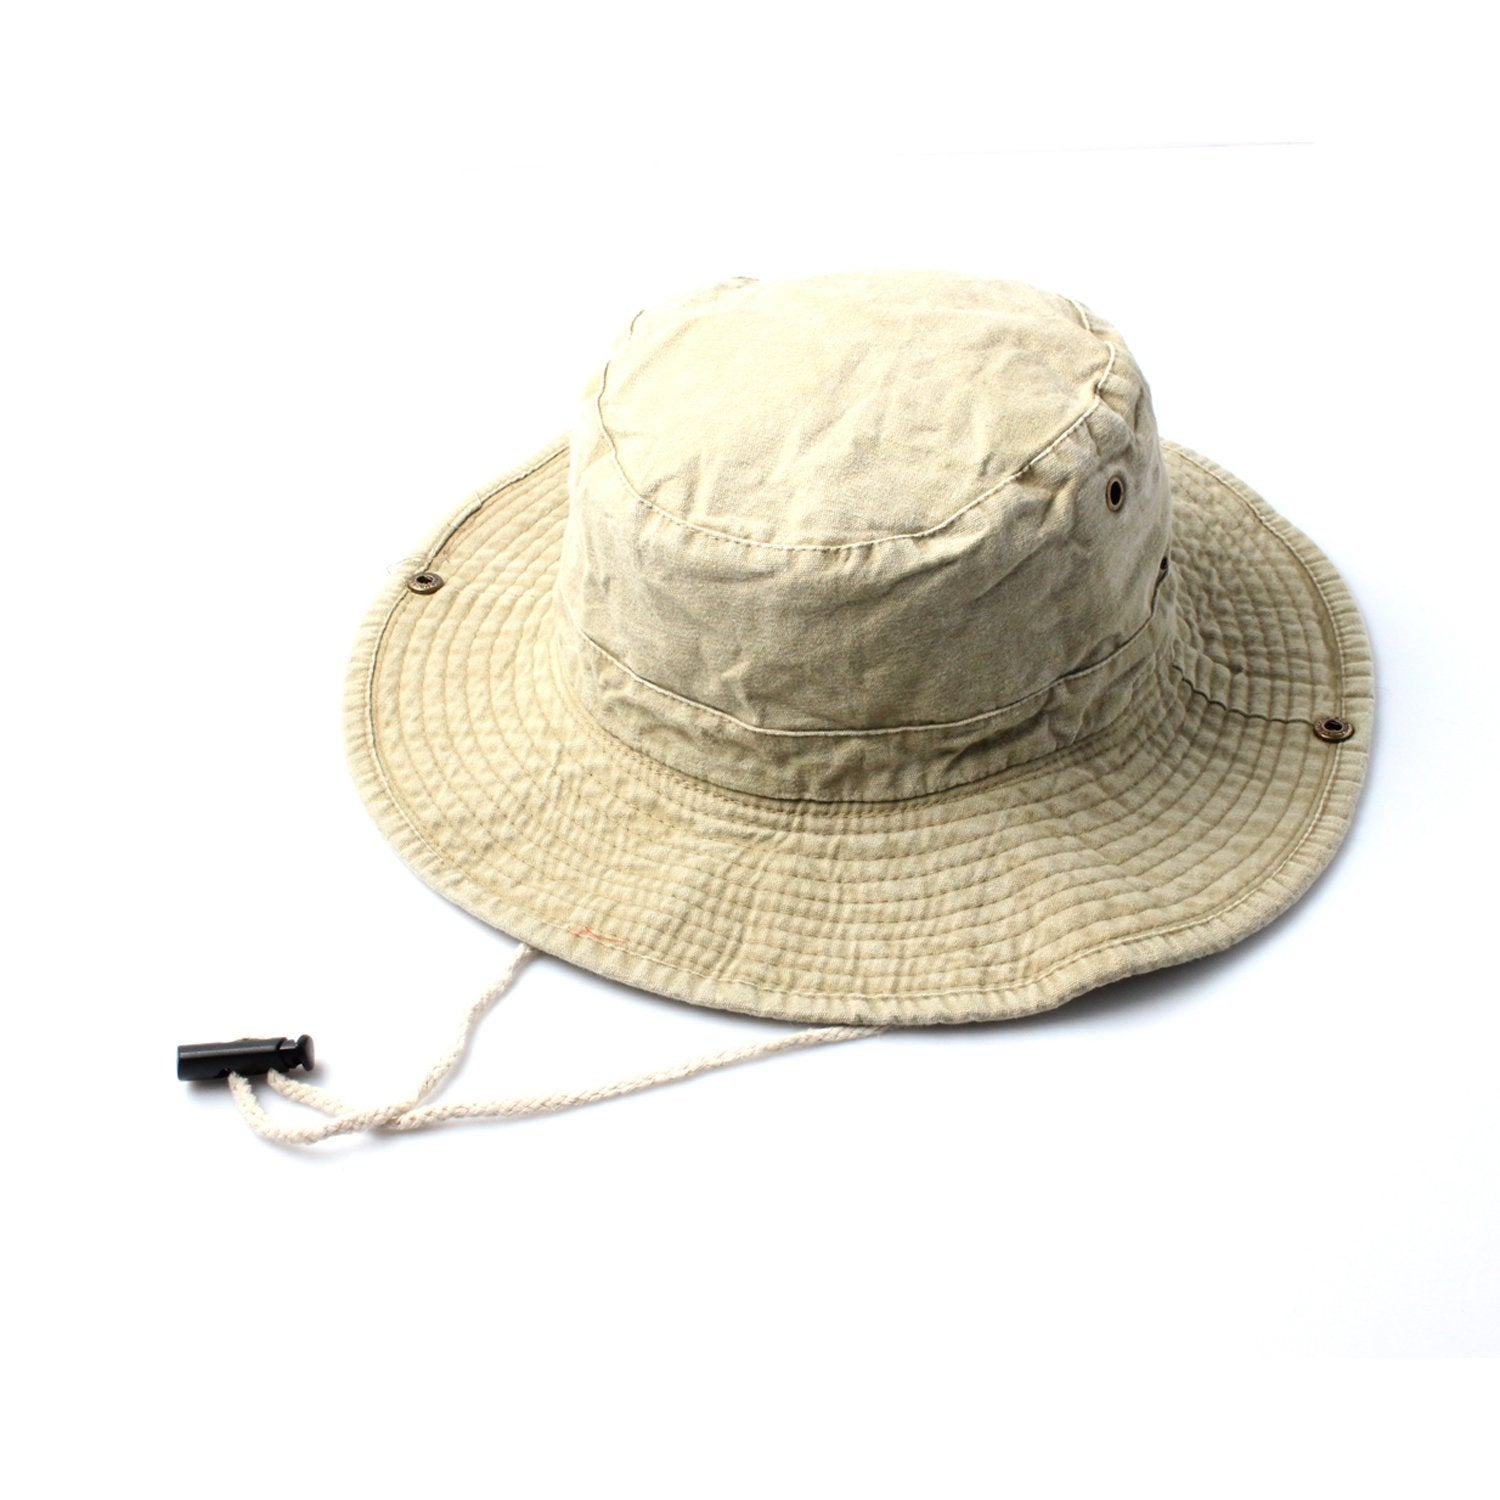 Beige Distressed Denim Look Safari Bucket Hat with Toggle Adjuster - Accent Fashion Accessories